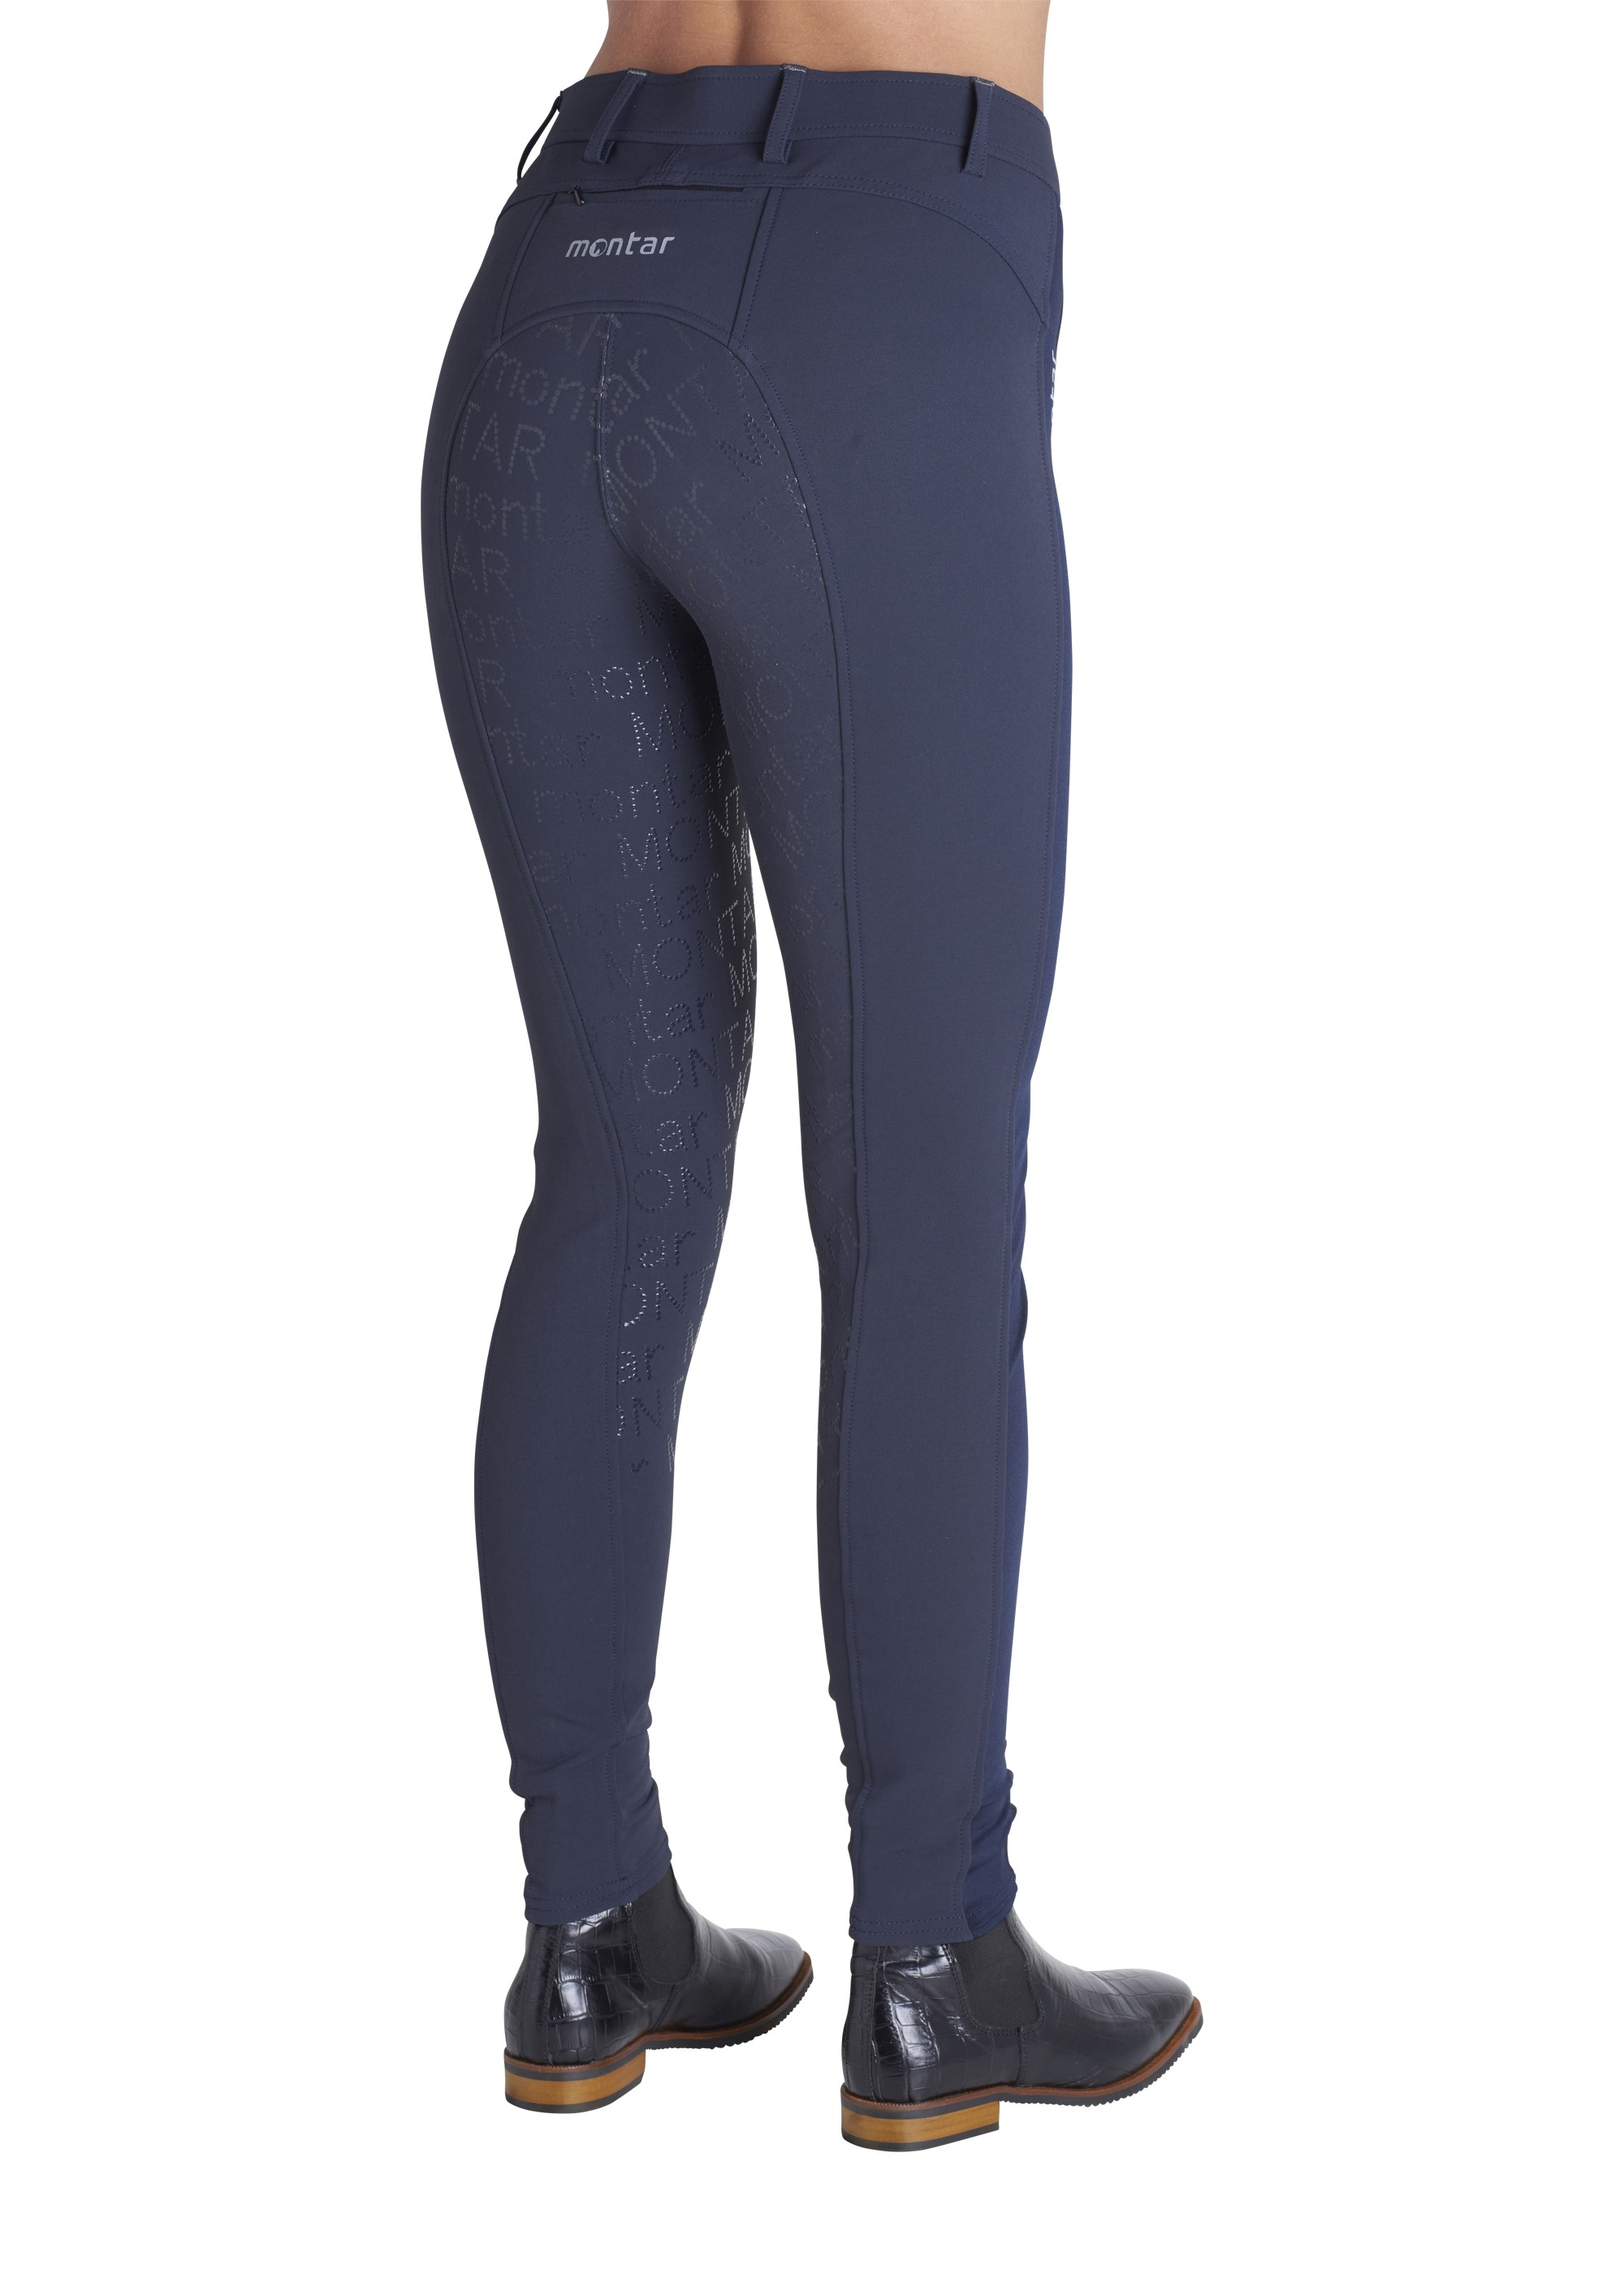 Montar Kelly Yati Full Grip Breeches  - Thomas Irving's equestrian and accessories store  Montar Kelly Yati Full Grip Breeches